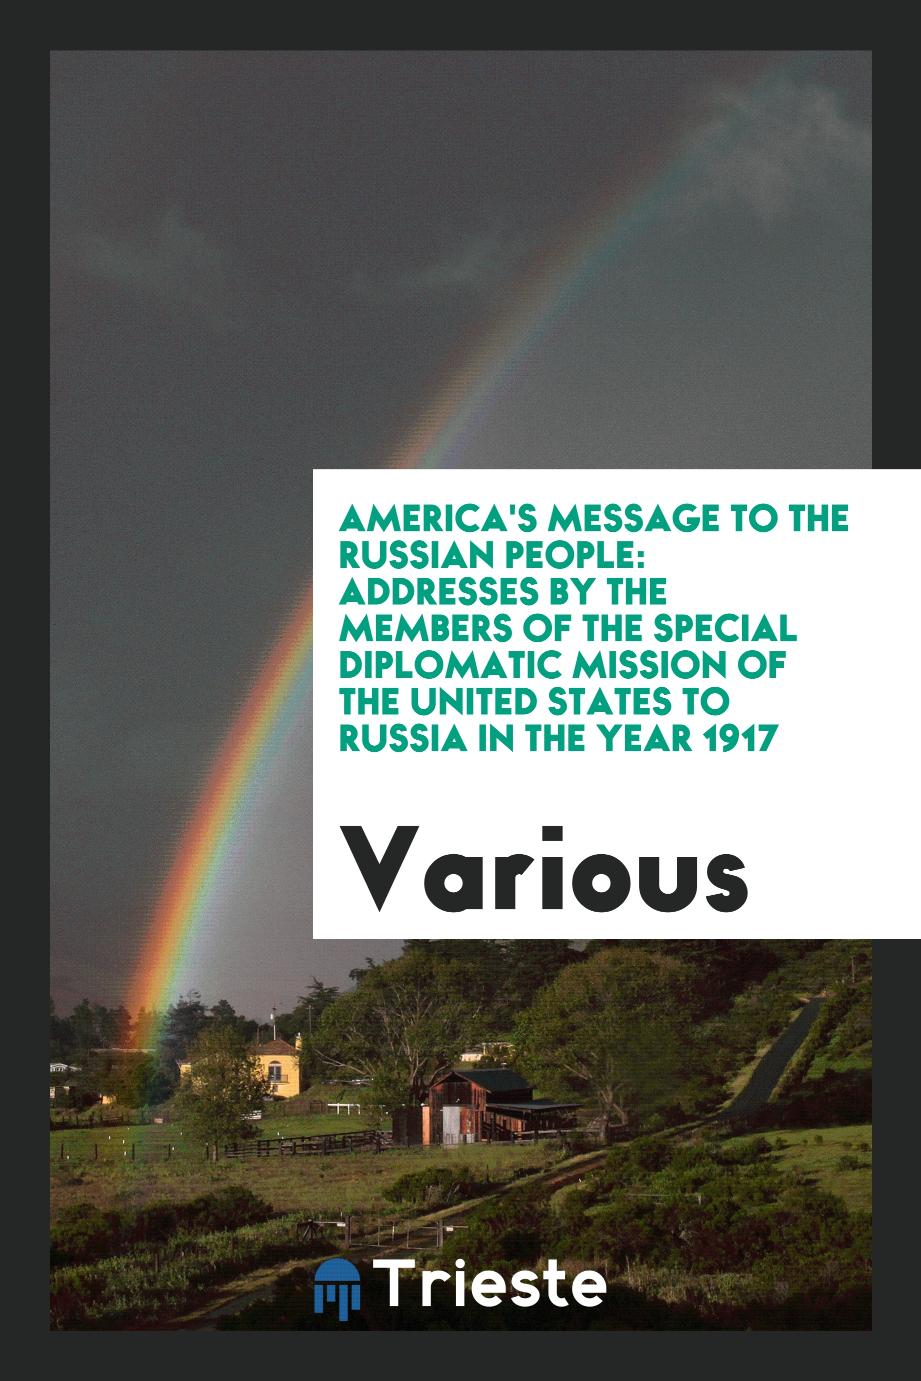 America's Message to the Russian People: Addresses by the Members of the Special Diplomatic Mission of the United States to Russia in the Year 1917